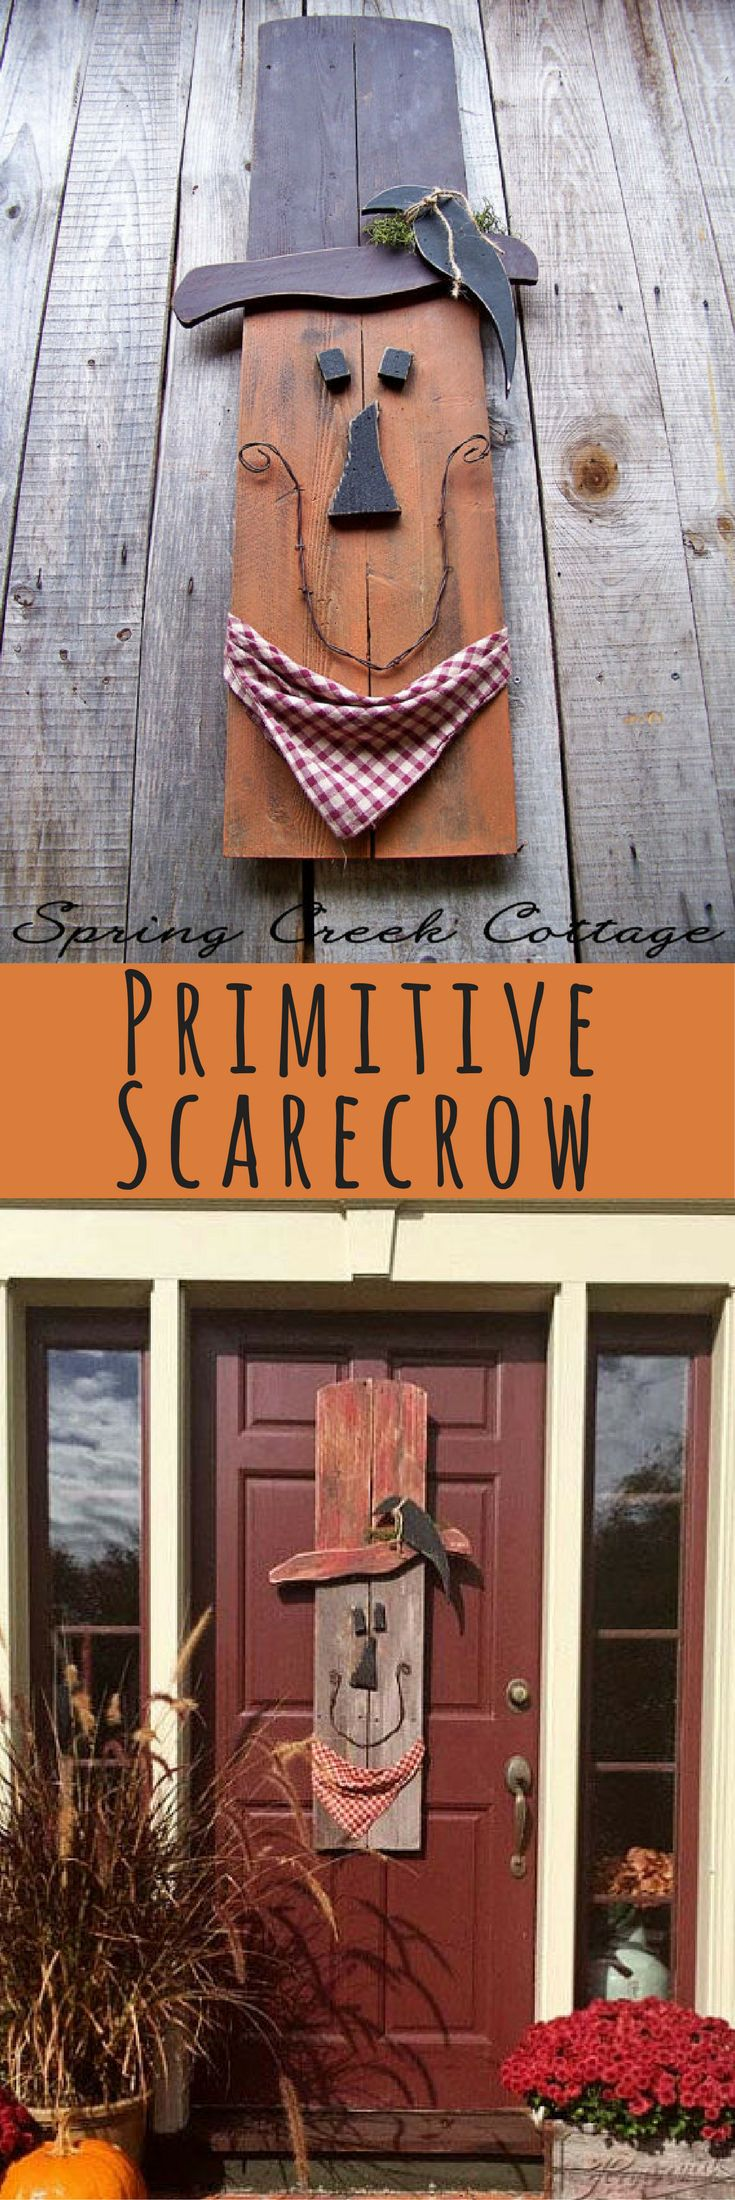 Primitive Scarecrow, Halloween Decor, Fall Decor, Hand-painted scarecrow, Rustic decor, Autumn, Porch Decor, Home Decor, Thanksgiving Decor, Garden Decor, Front door art #ad #affiliatelink